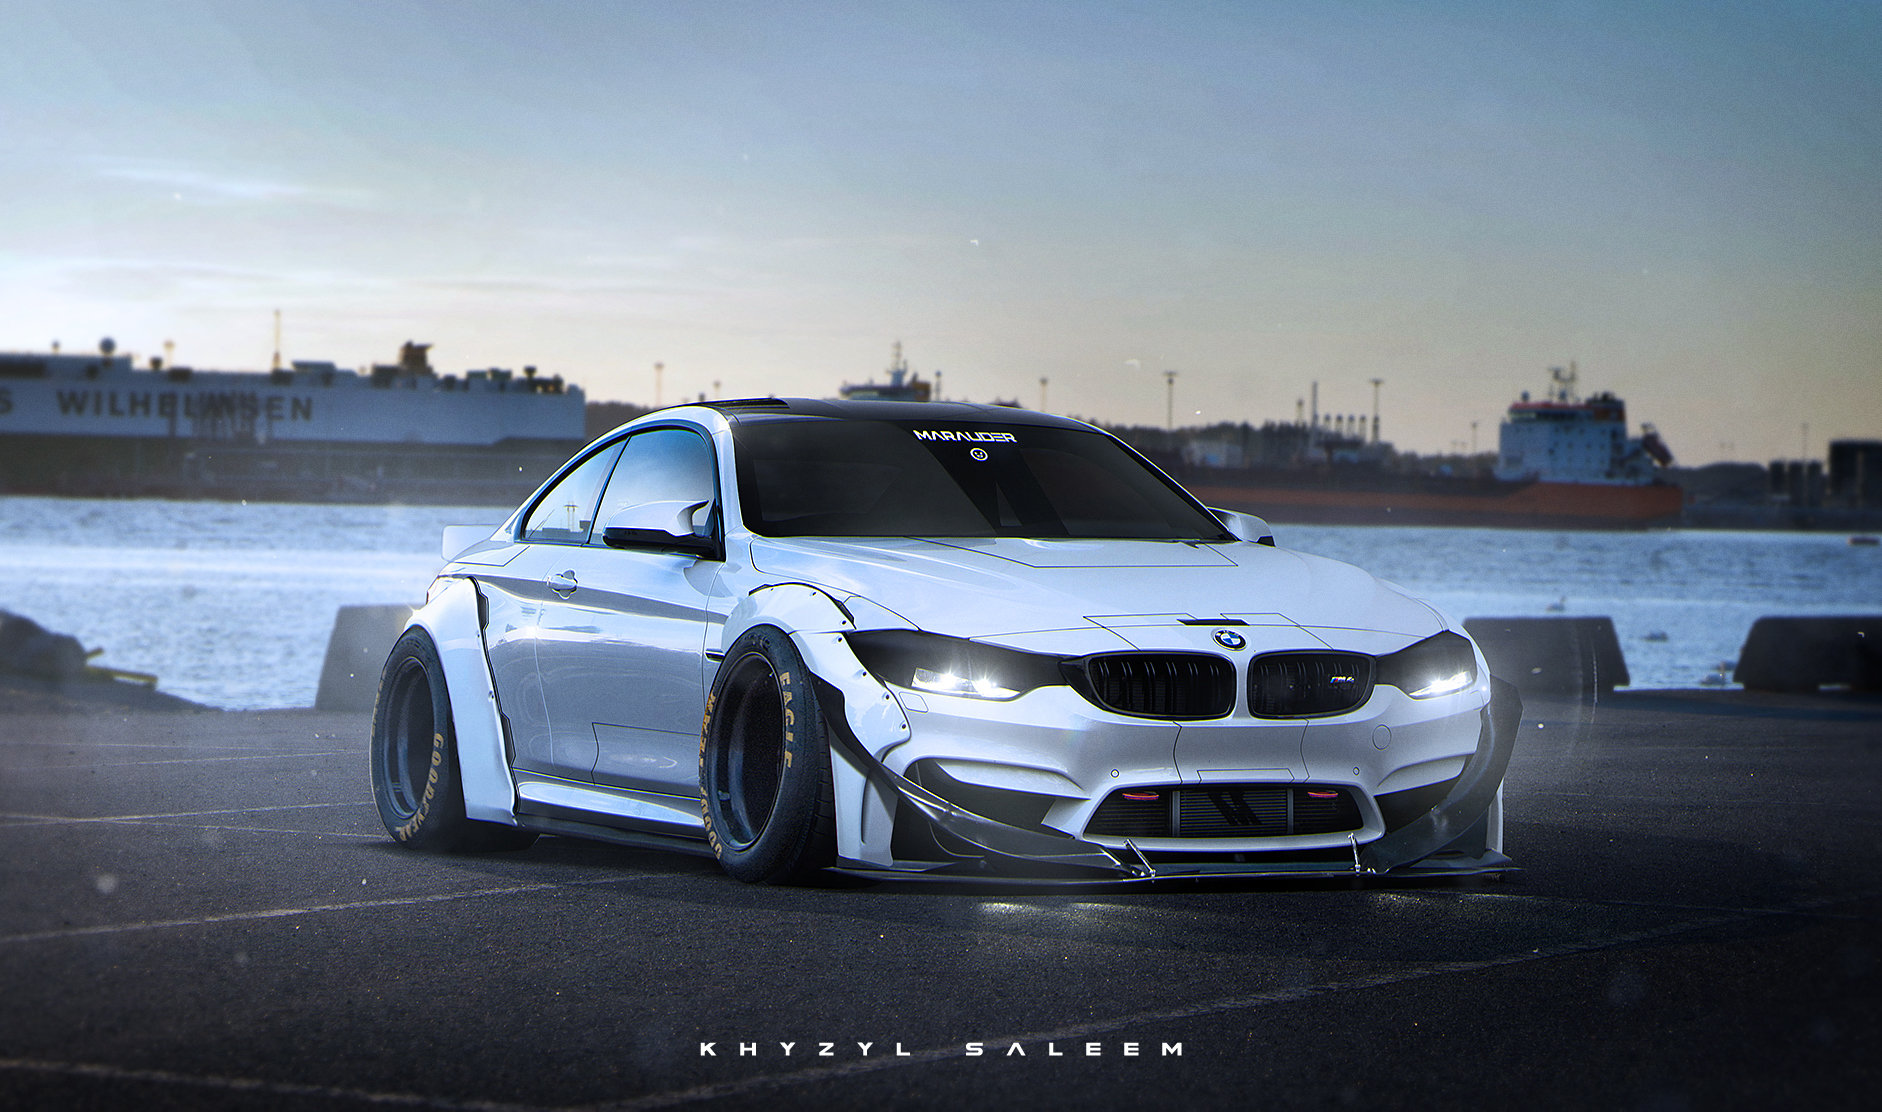 Khyzyl saleem m4low